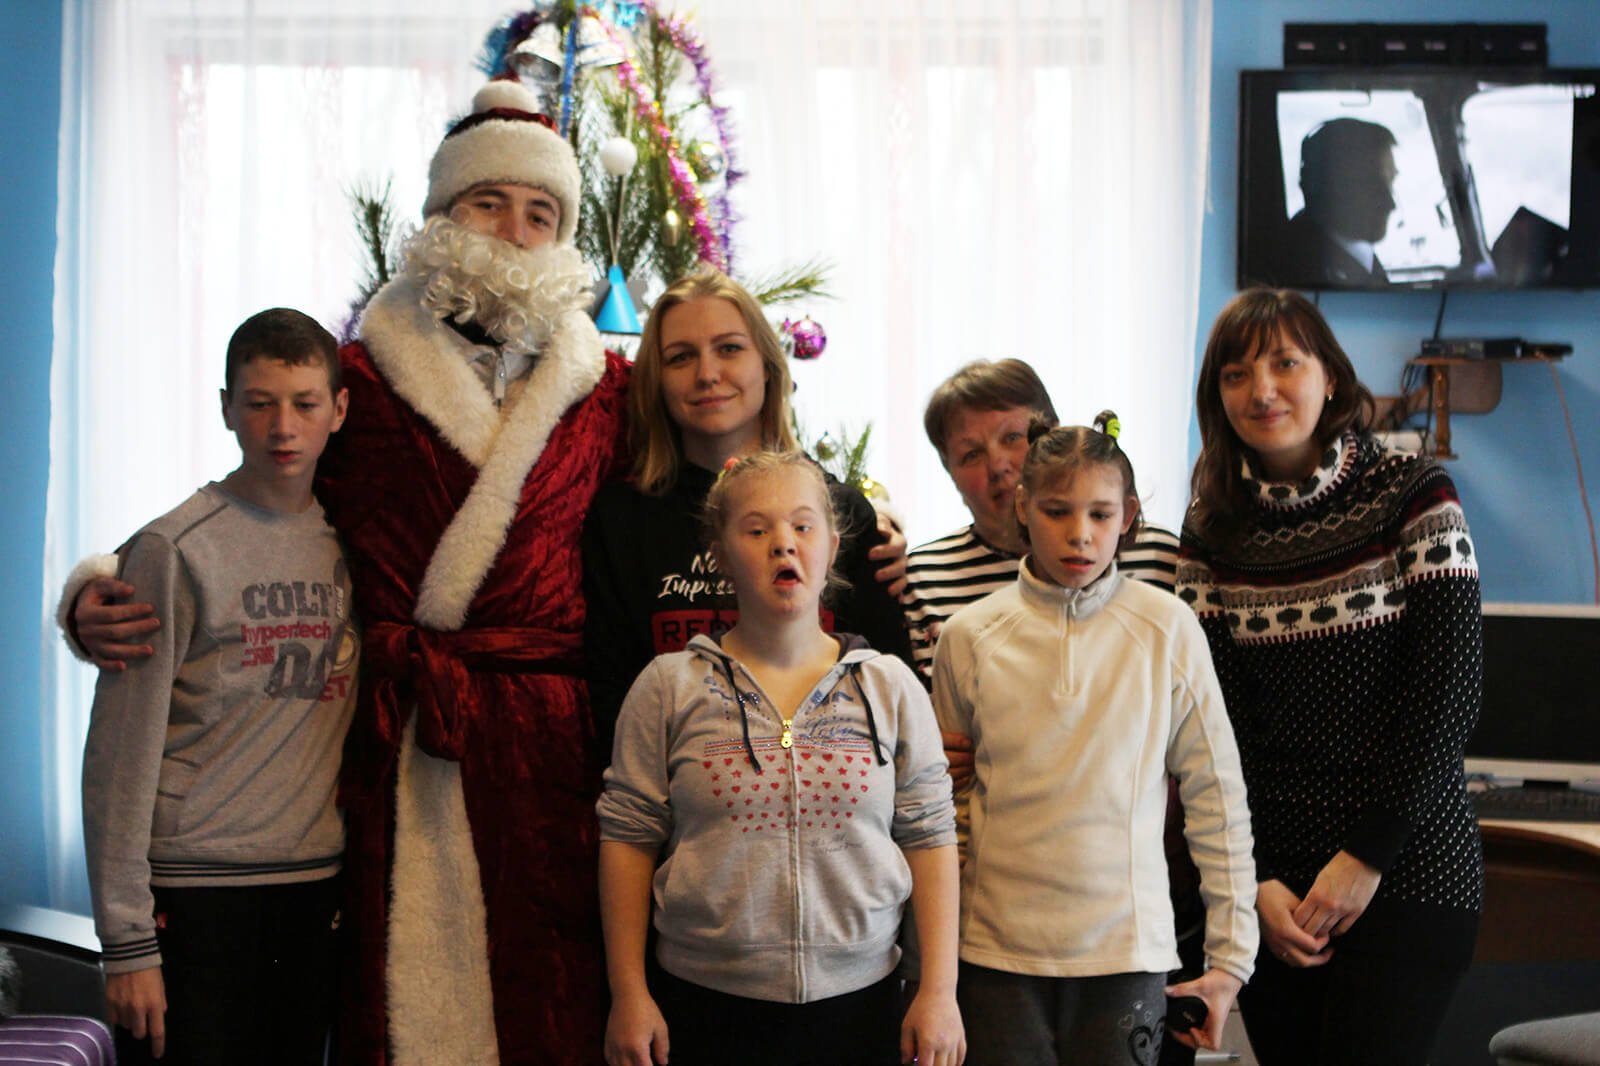 Brightening Christmas for kids: Redwerk team visited children in foster families, photo 9